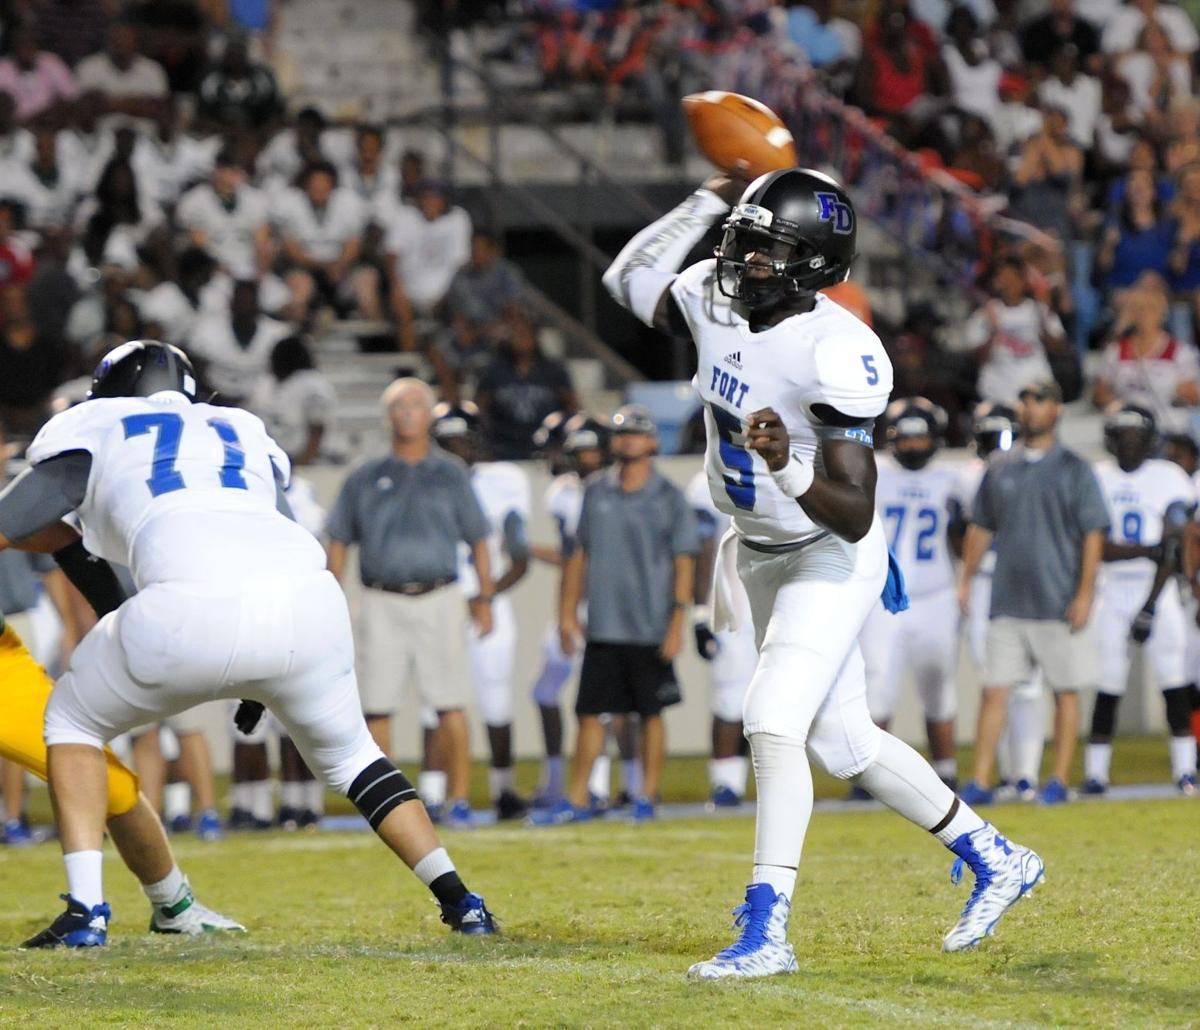 Fort Dorchester QB Dakereon Joyner named Lowcountry player of week